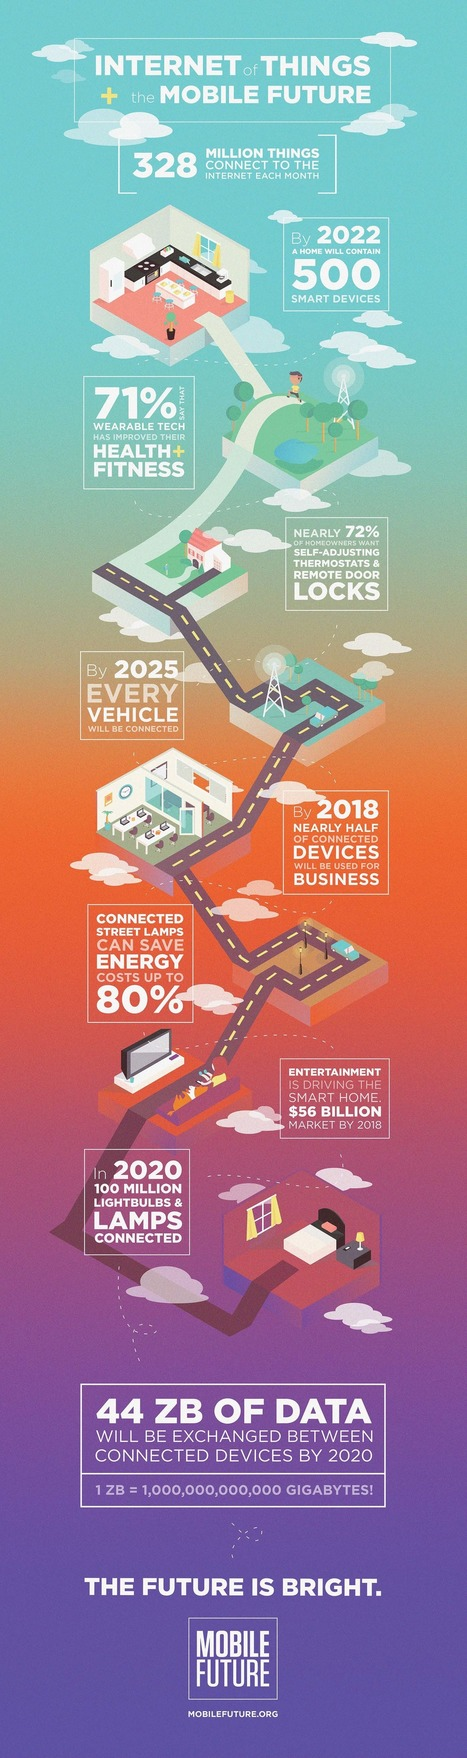 The Mobile Future and Internet Of Things - Infographic - Brainy Marketer   Blogging, Social Media, Marketing, Entrepreneurs   Scoop.it